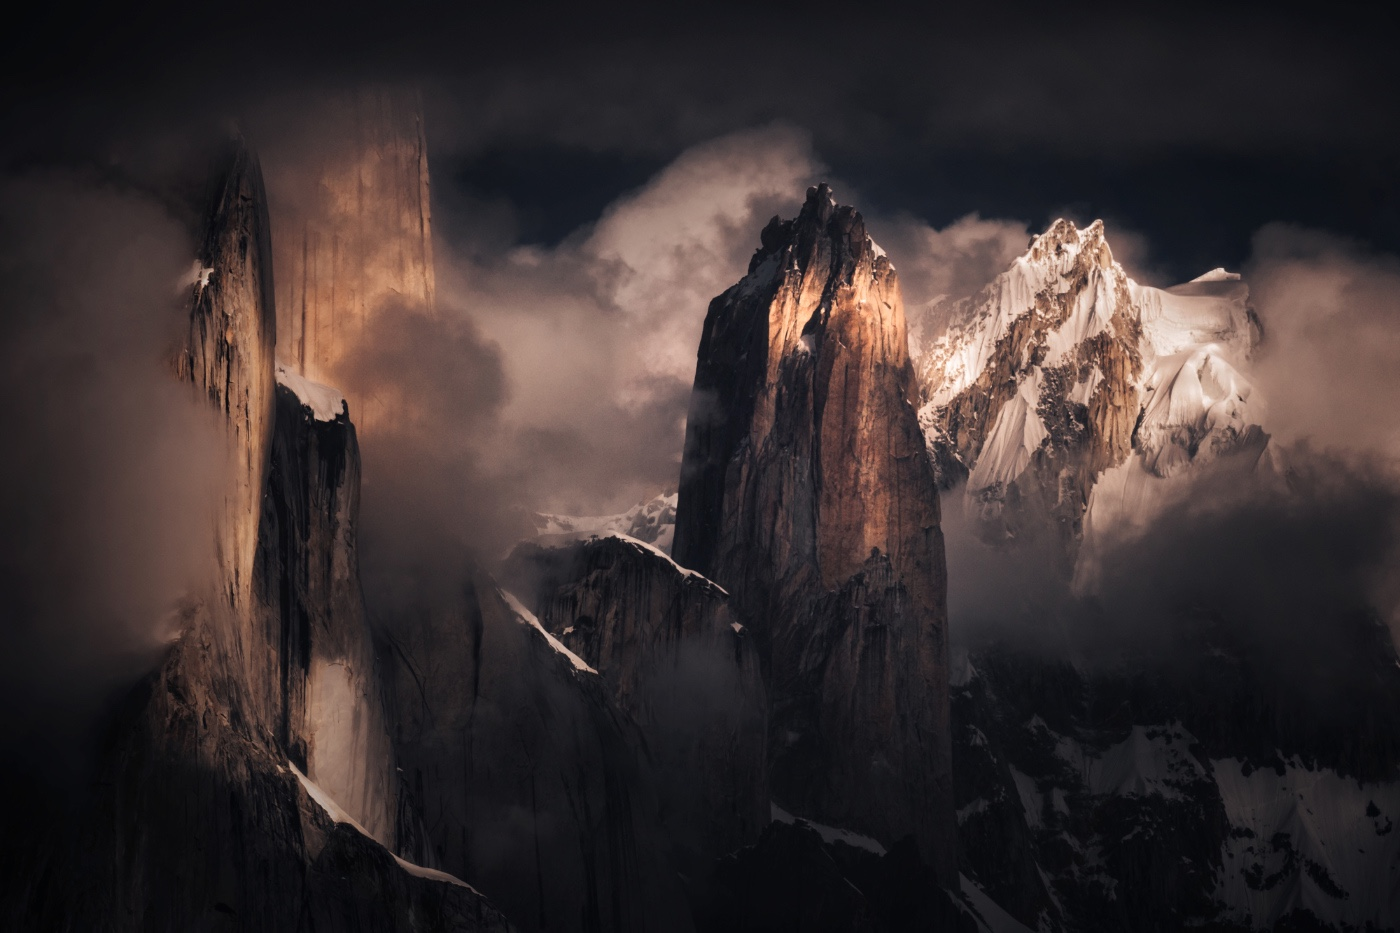 Trango-Towers-a-family-of-over-6-000-meter-tall-granite-mountains-lying-in-the-Pakistani-border-with-China-s-Xinjiang-province.jpg